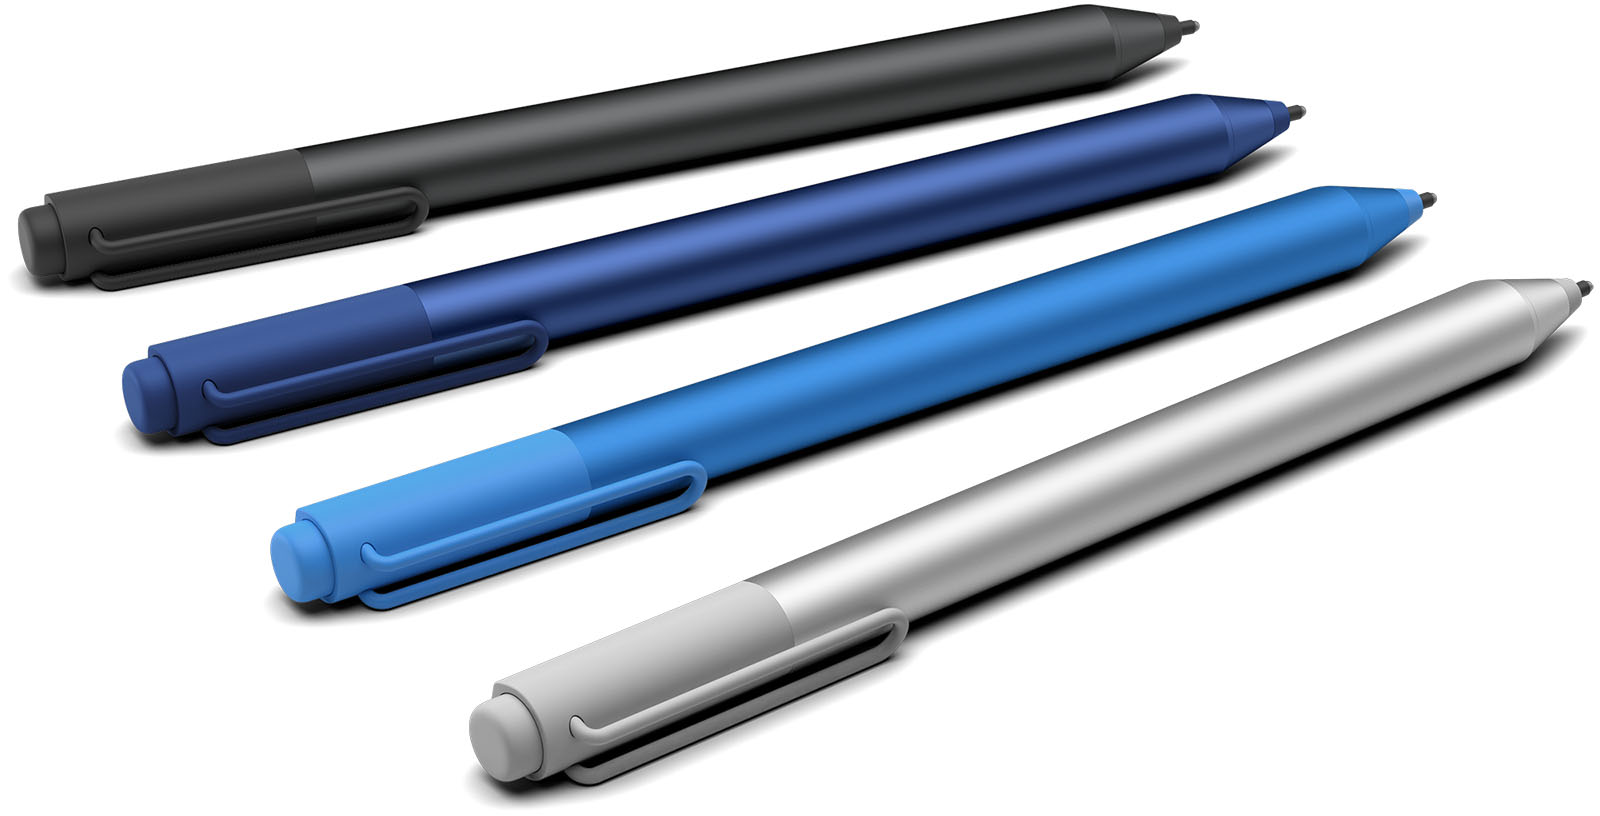 Surface Pen Colors